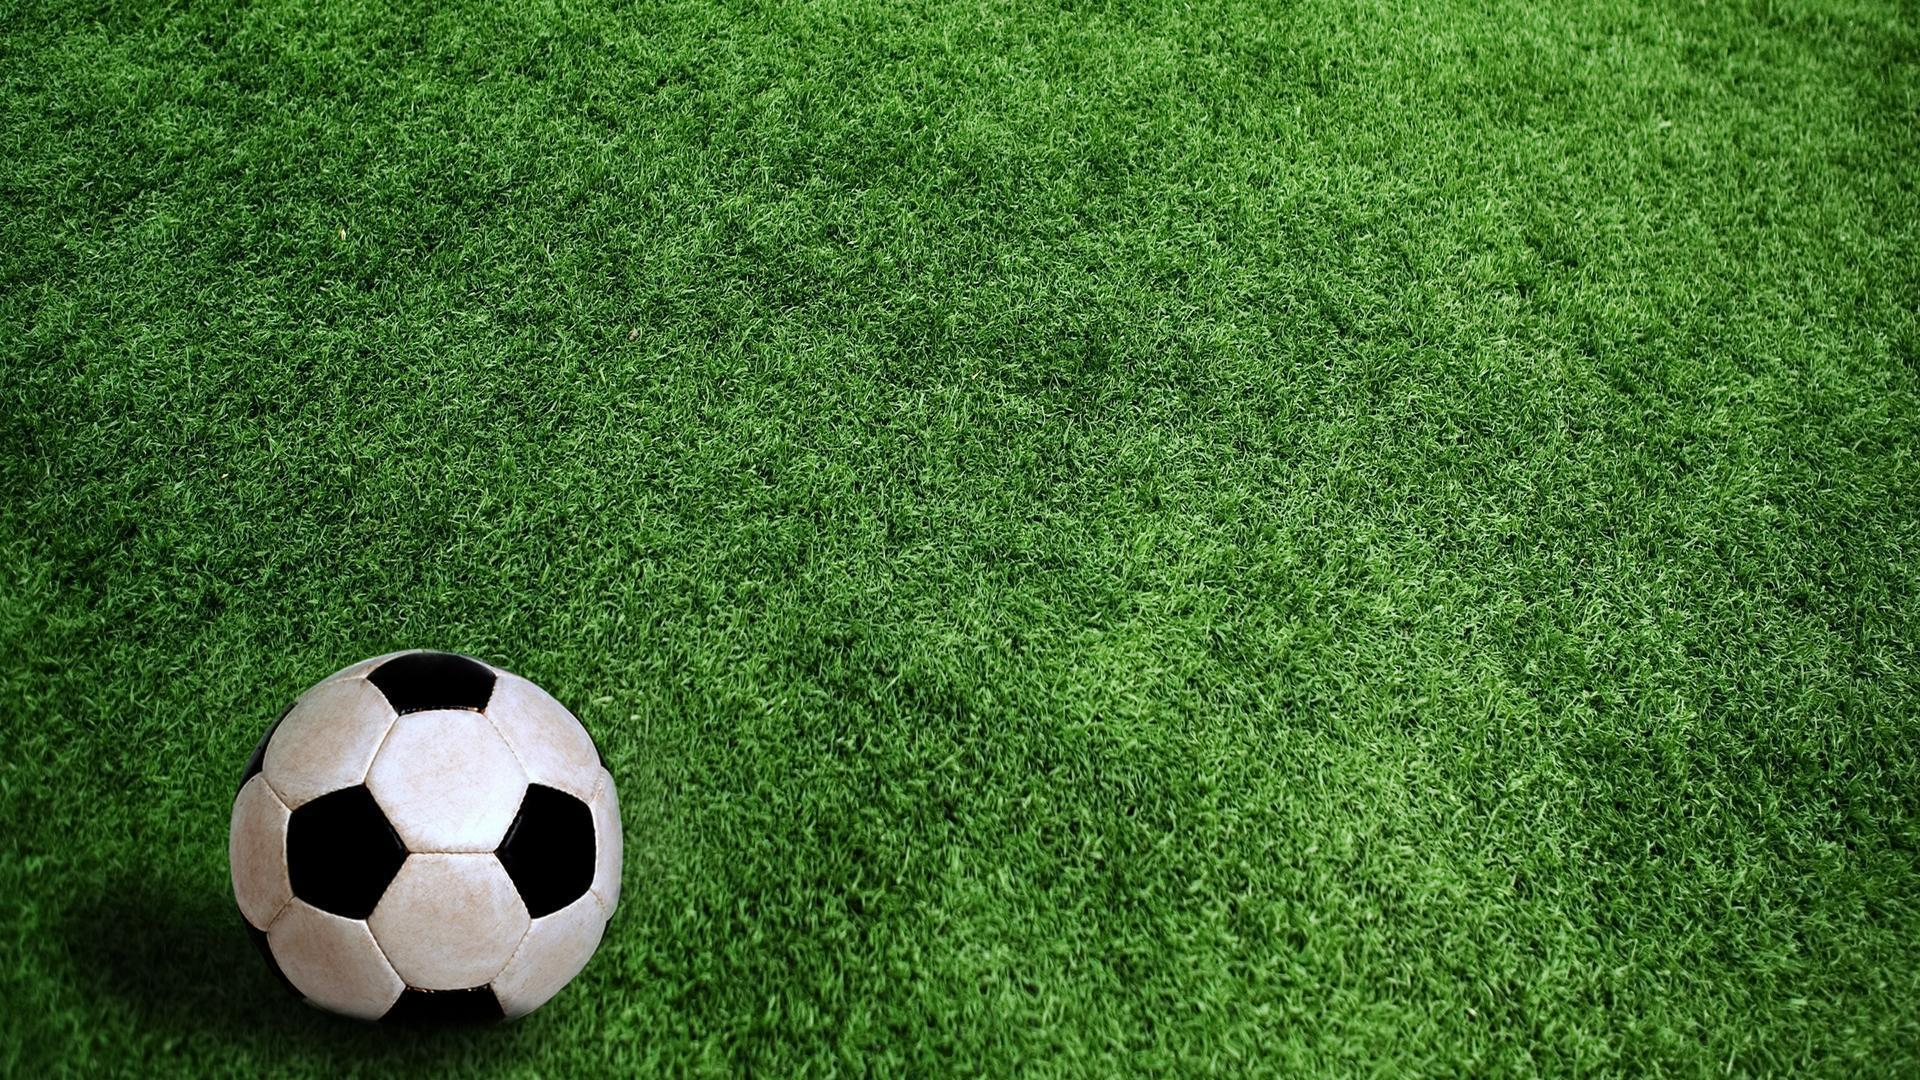 Soccer Backgrounds Image - Wallpaper Cave